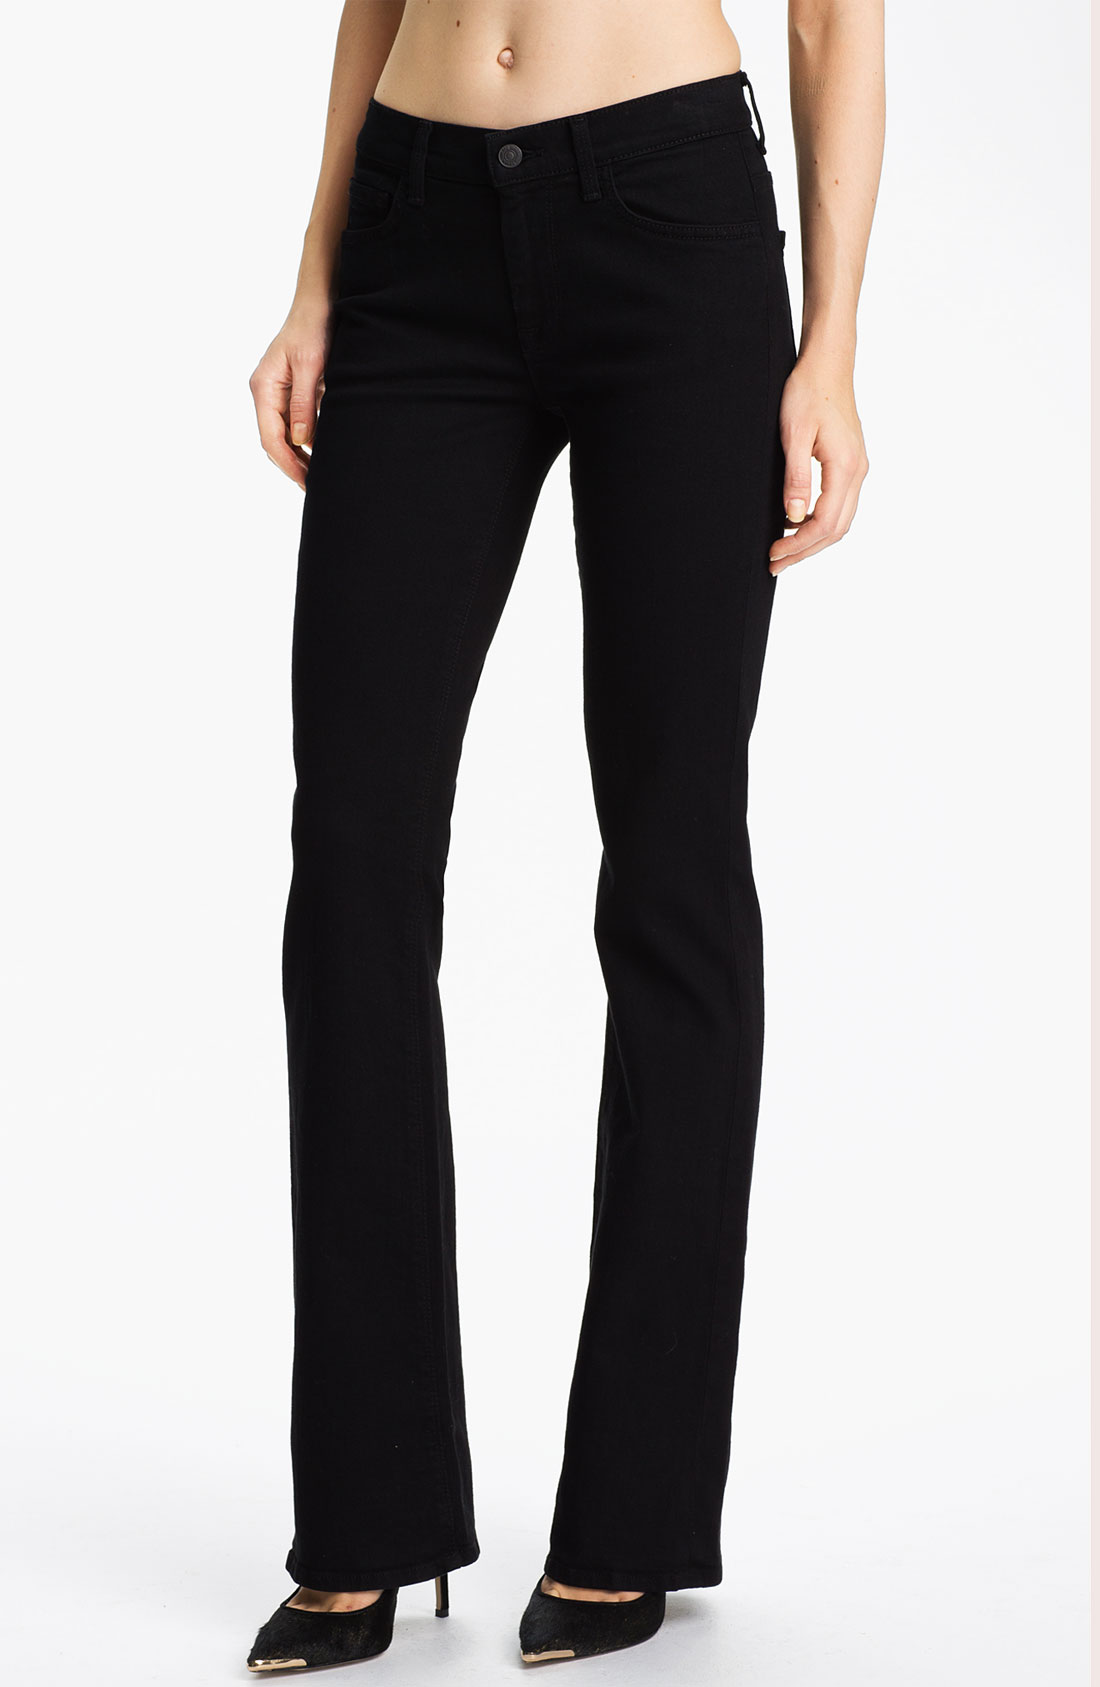 Nordstrom Cuffed Crop Pants Camel Trouser & Wide-Leg Pants Nordstrom Clothing:Zip fly with button closure,Nordstrom Camel Cuffed Crop PantsNordstrom ,Nordstrom Trouser & Wide-Leg PantsNordstrom CamelTrouser & Wide-Leg PantsNordstrom ,Back welt pockets.